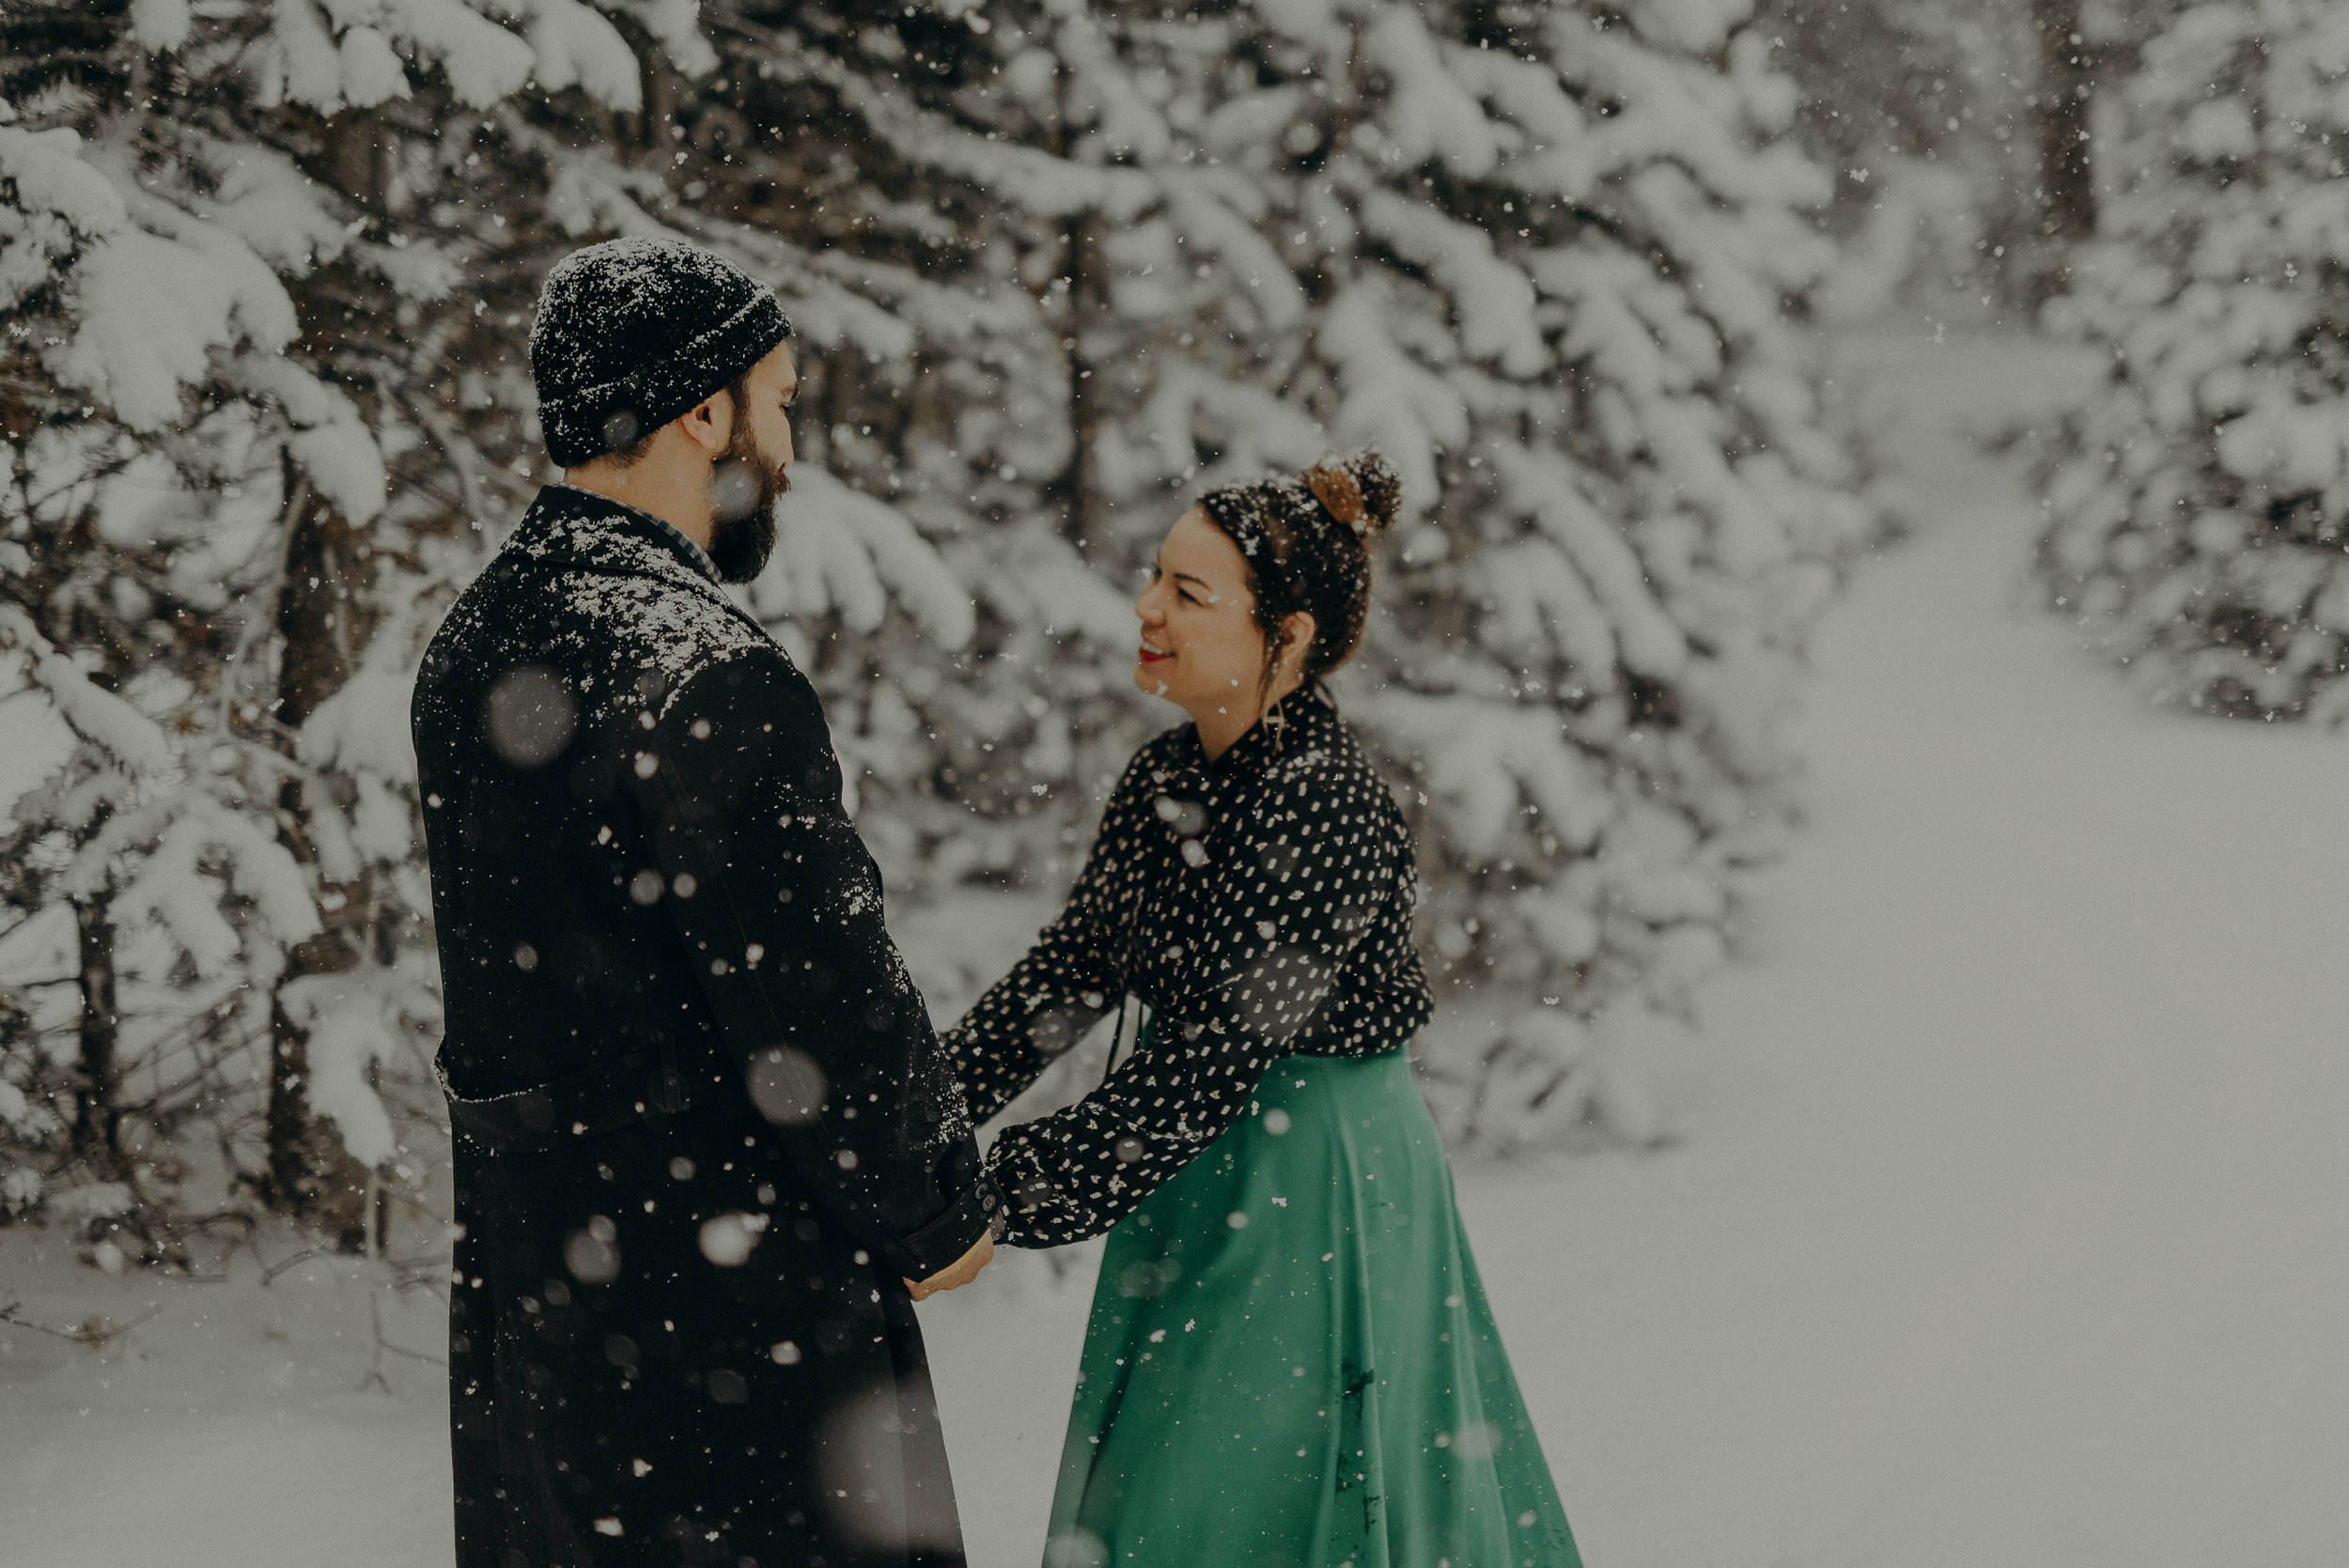 ©Isaiah + Taylor Photography - Los Angeles Wedding Photographer - Snowing engagement session-010.jpg